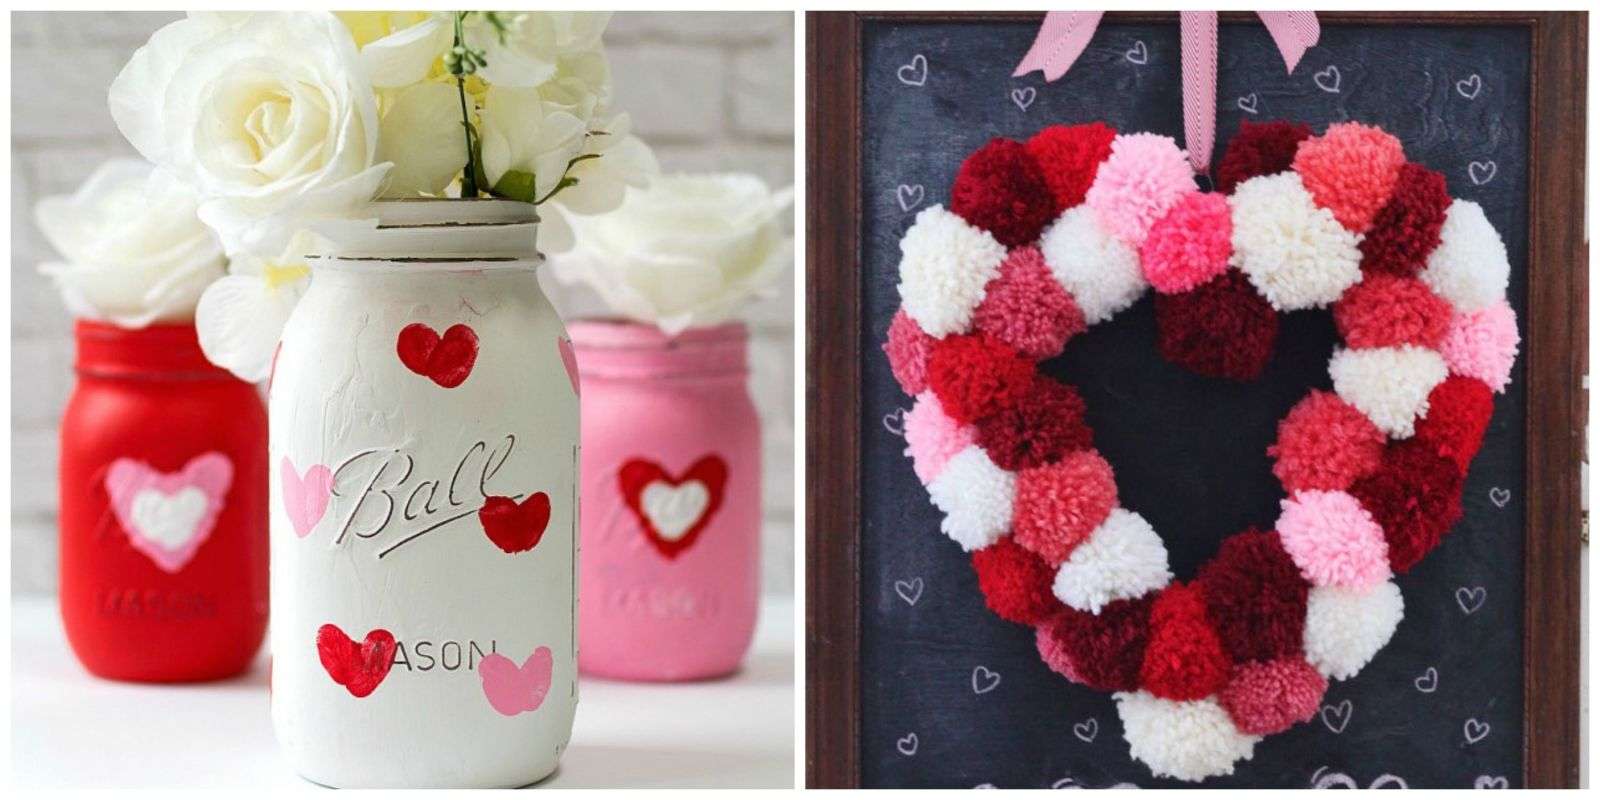 100+ Best Valentine's Day Ideas 2017 - Valentines Day Gifts Ideas ...